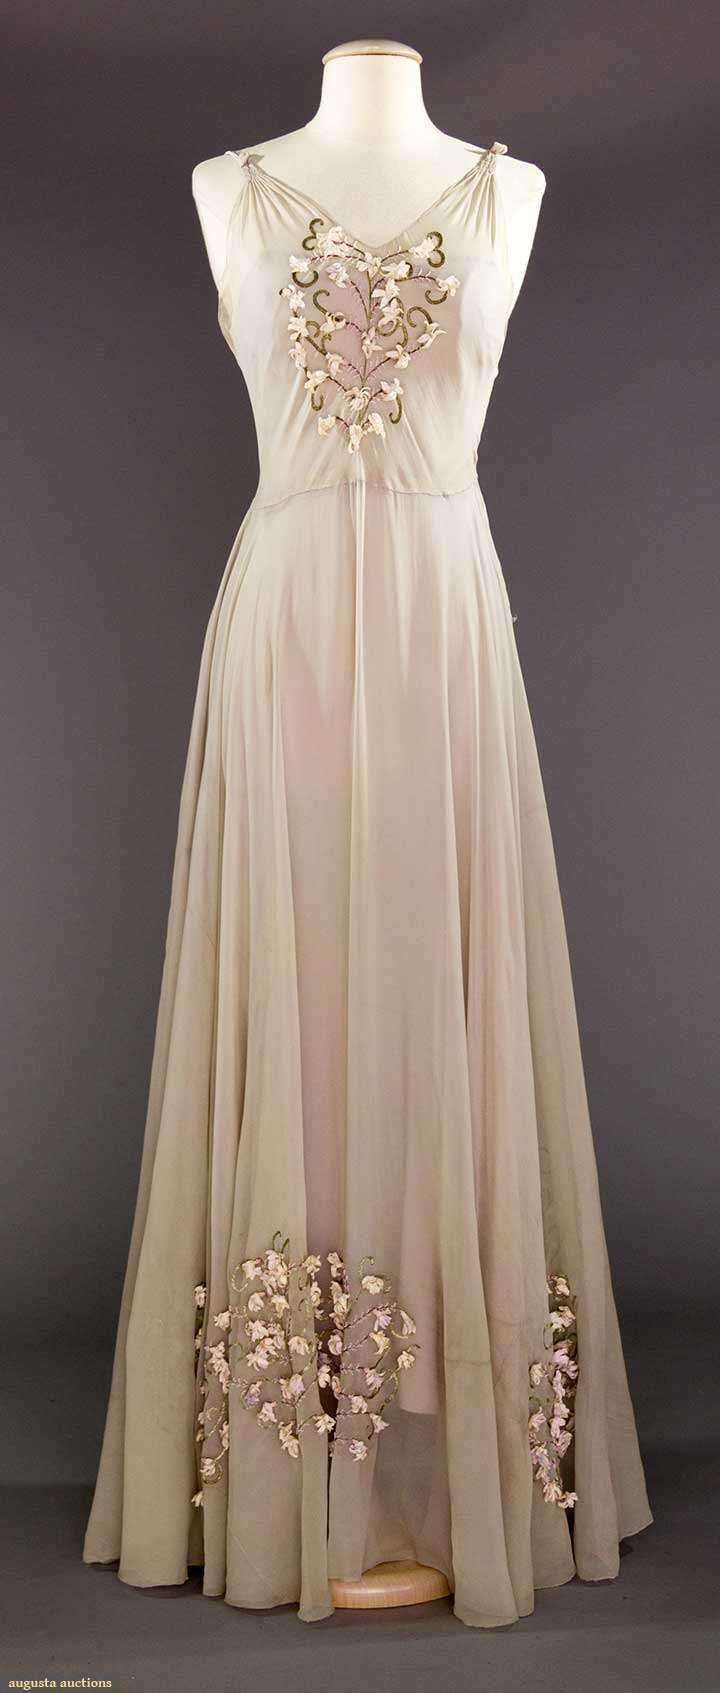 PALE GREY CHIFFON EVENING GOWN, c. 1937